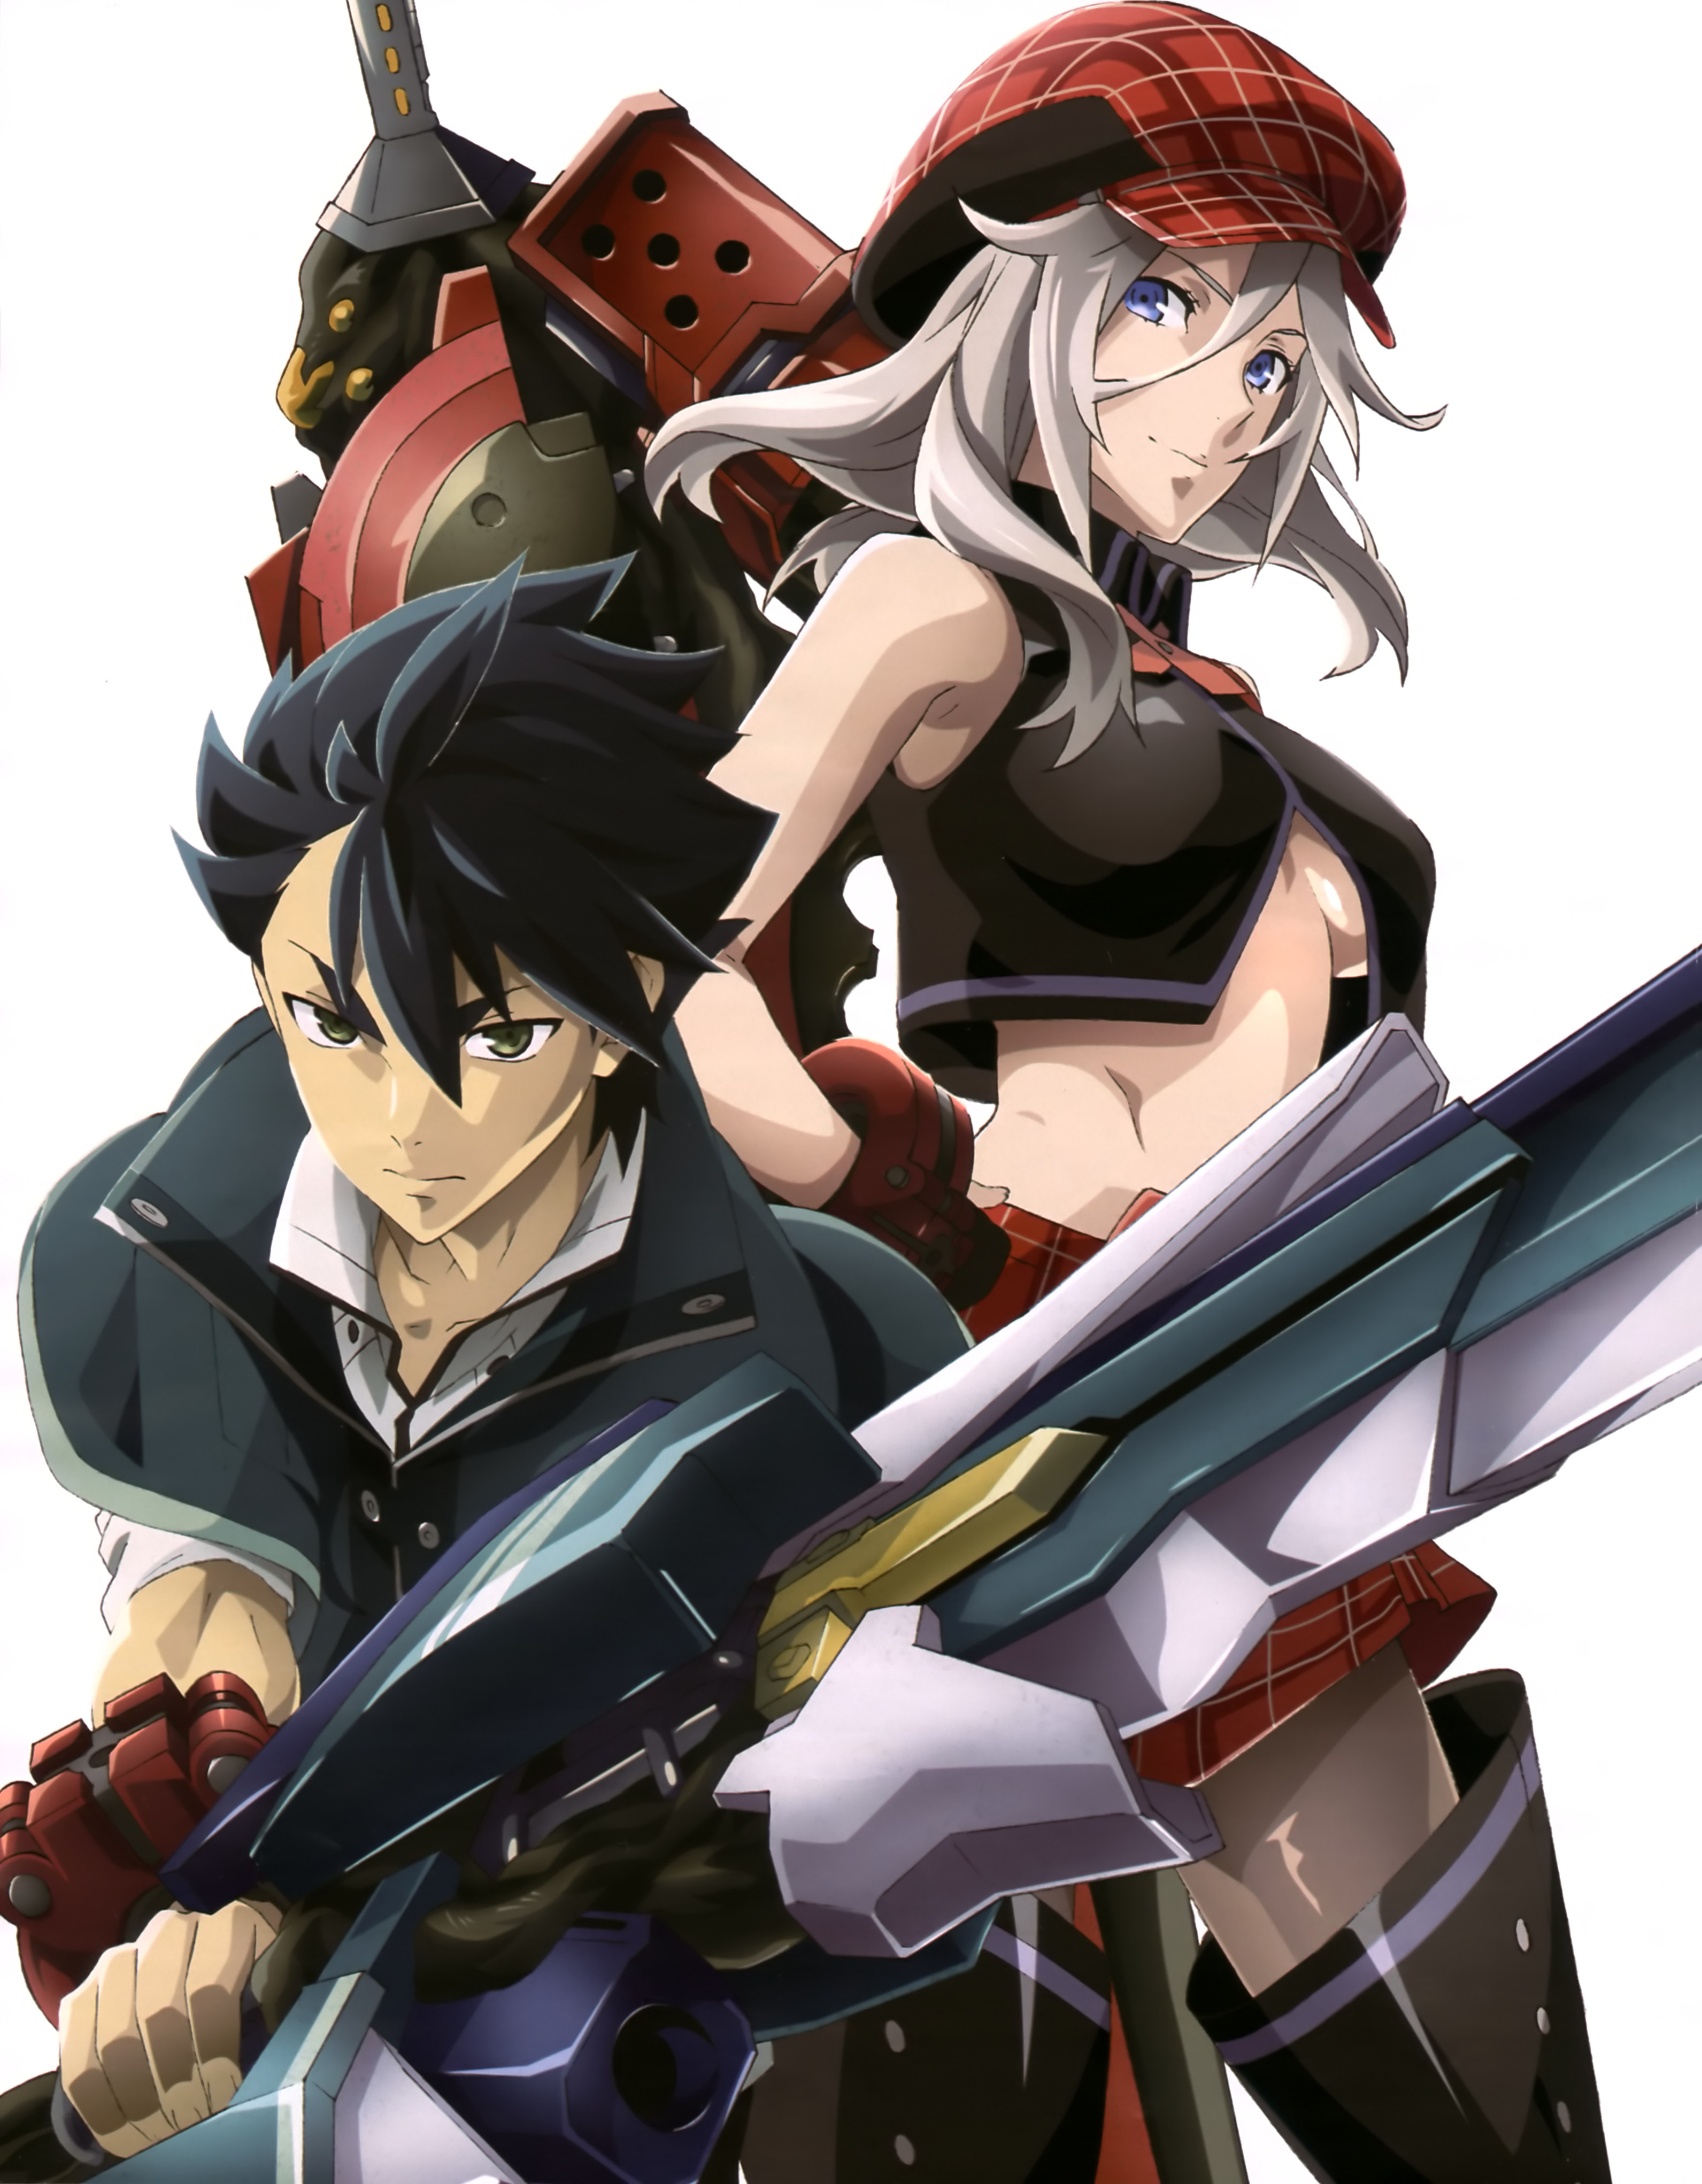 New God Eater Anime Visual Featured in Animedia